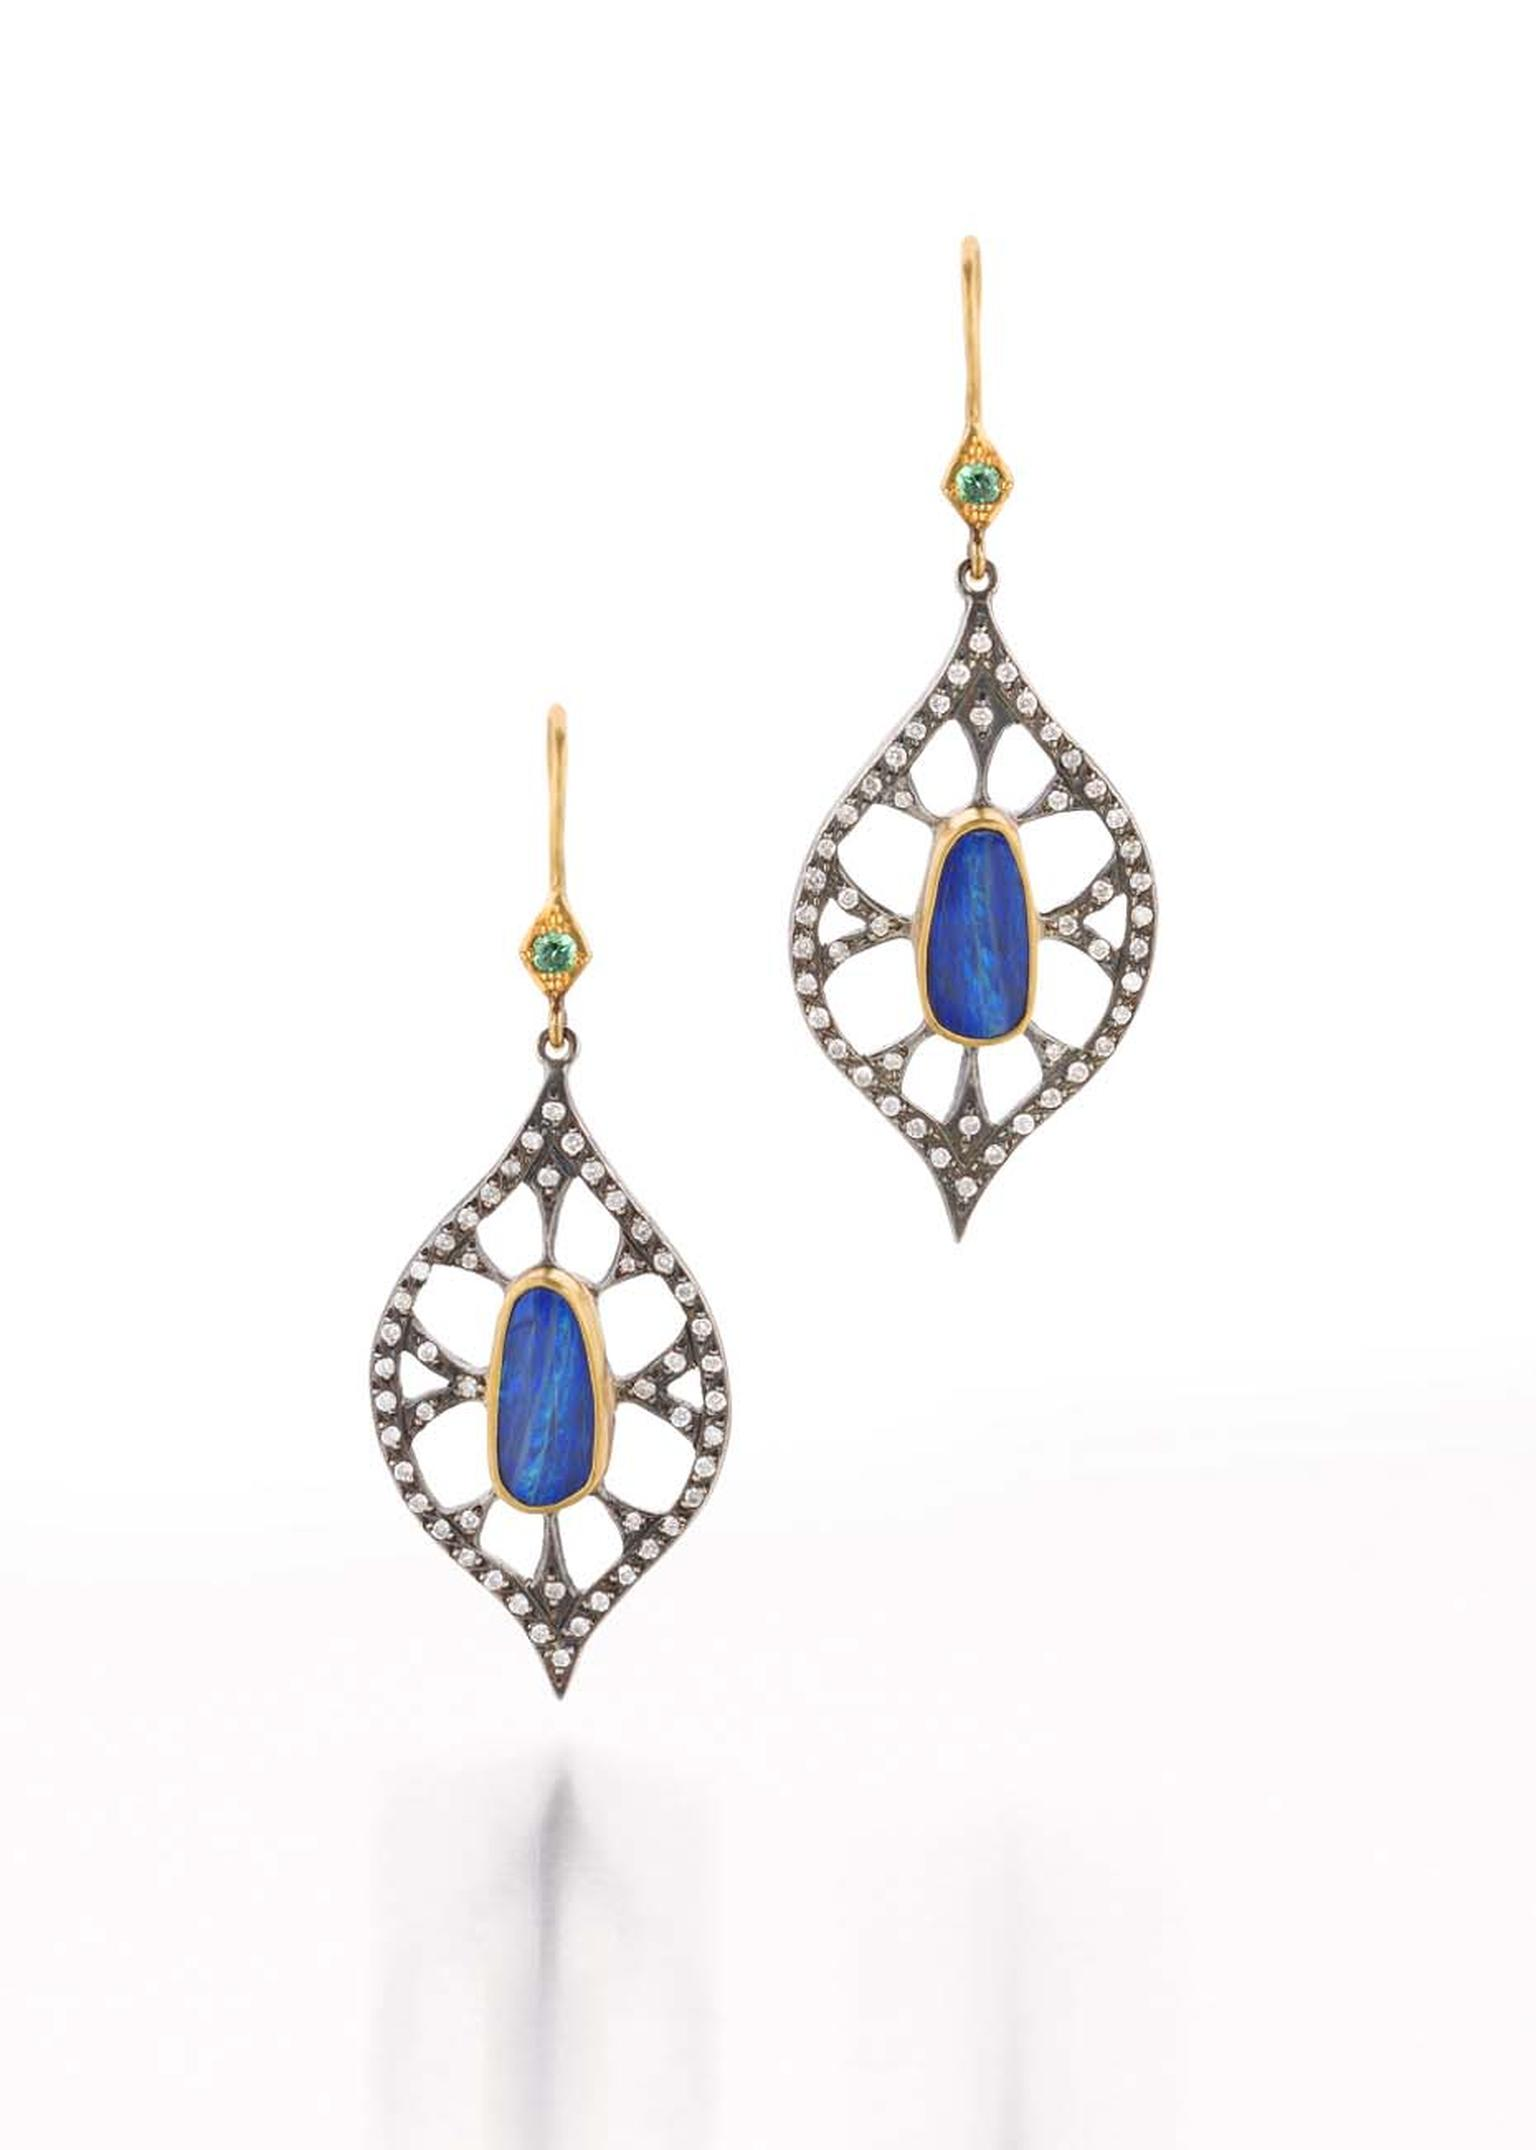 Annie Fensterstock gold and blackened silver Web earrings featuring opals and diamonds.